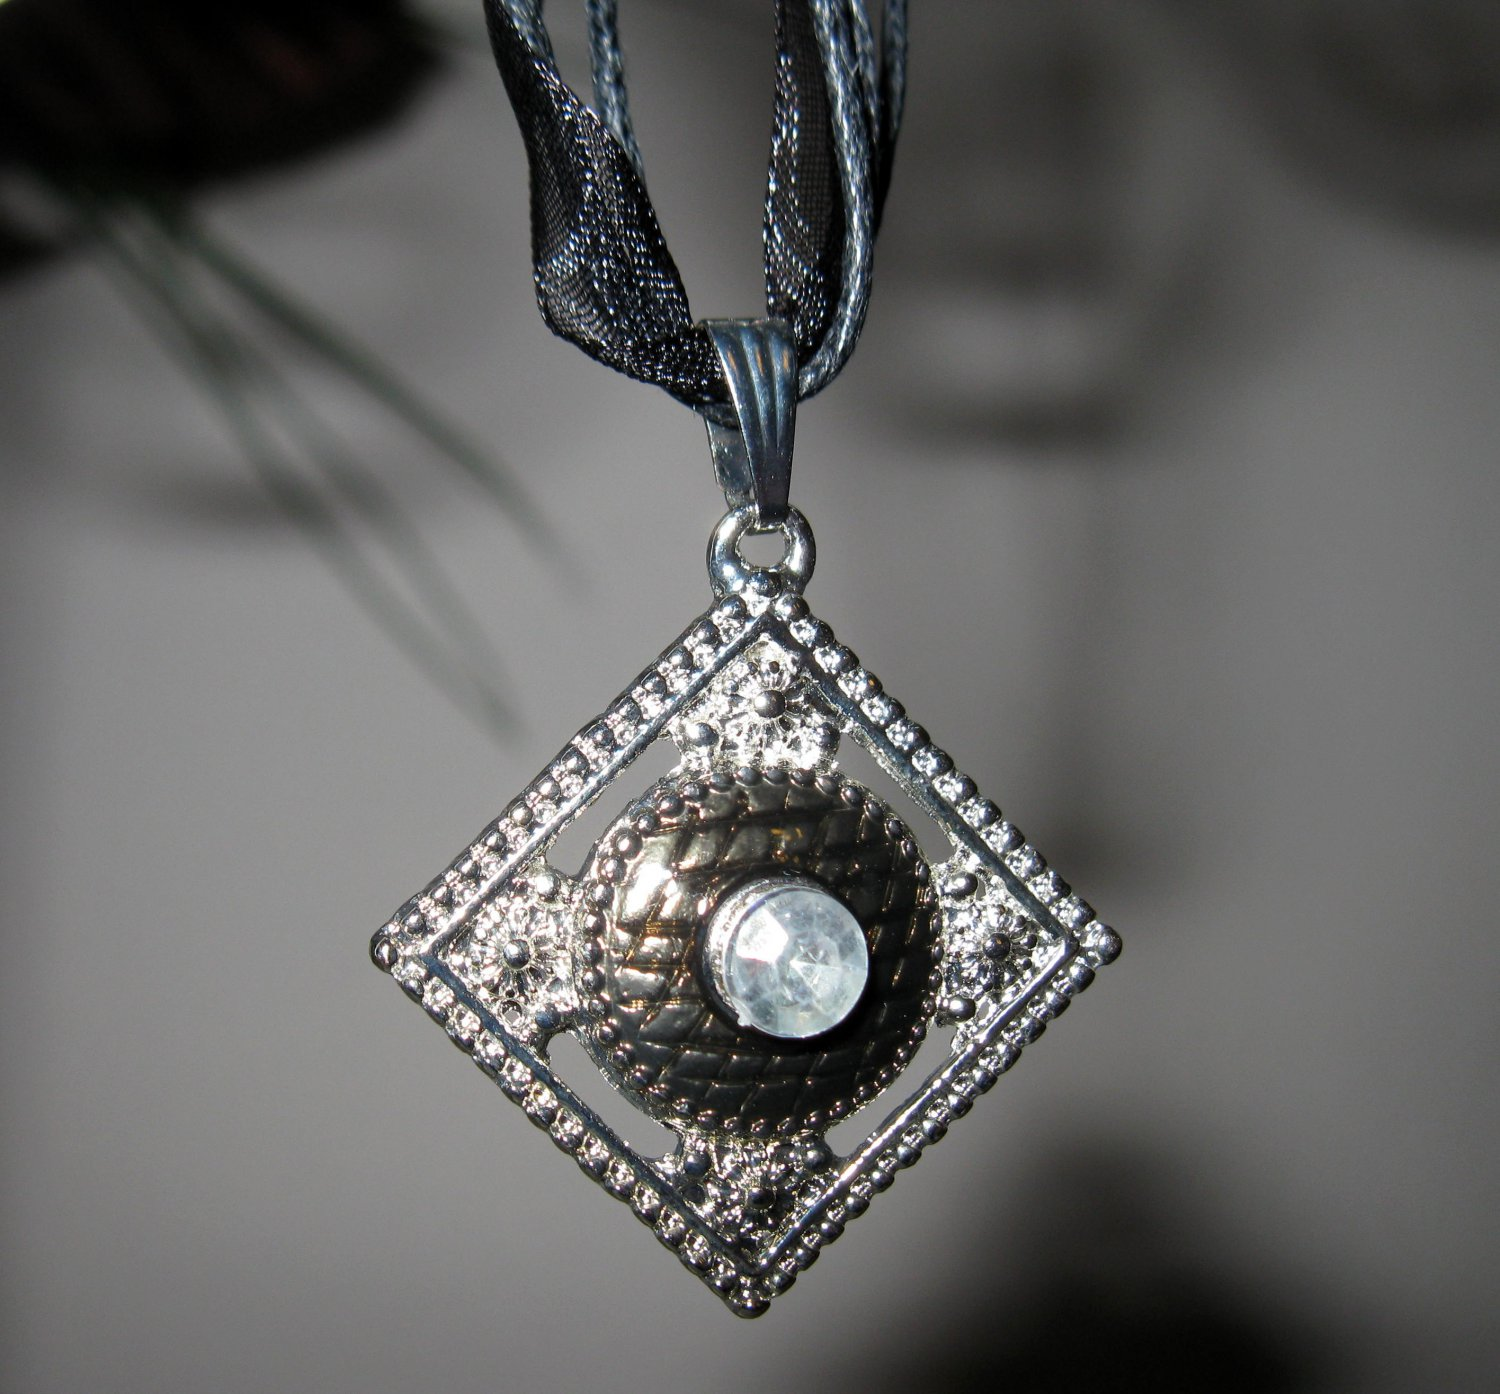 Beautiful Necklace & Pendant Silver & Black Diamond Shaped #621